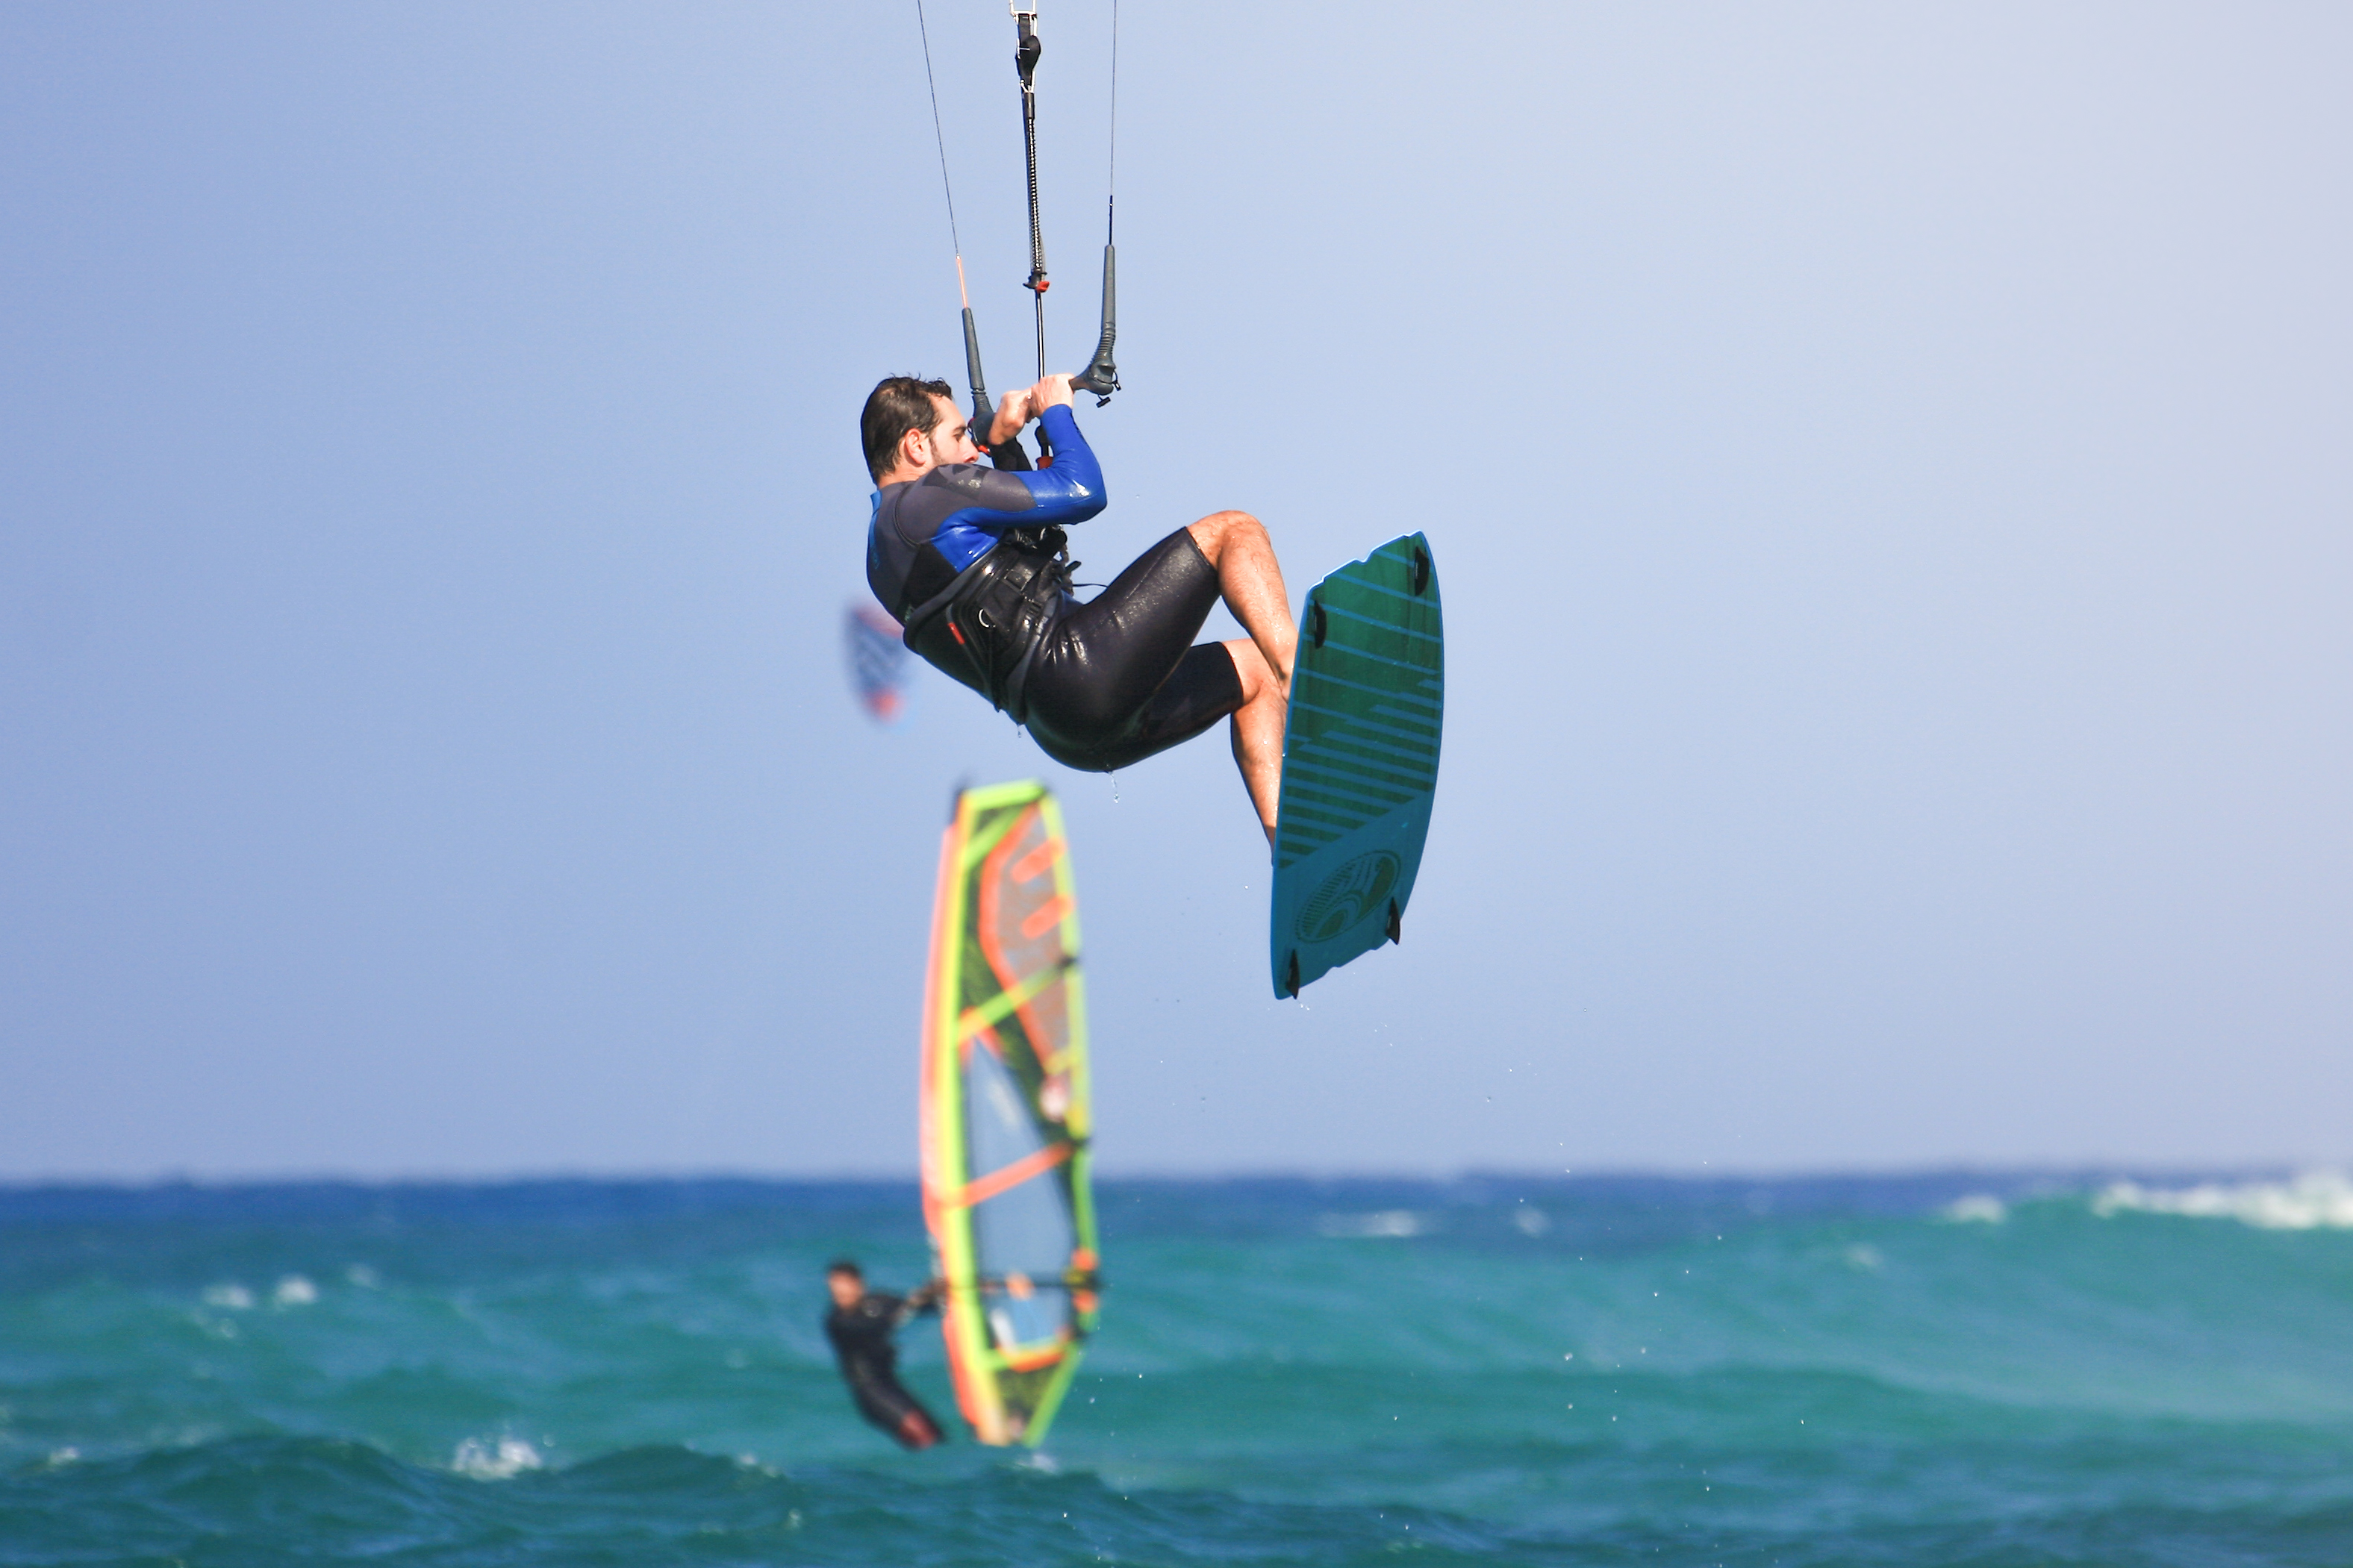 kiteFuerte - Kitesurfing Photographer in Fuerteventura Flag beach